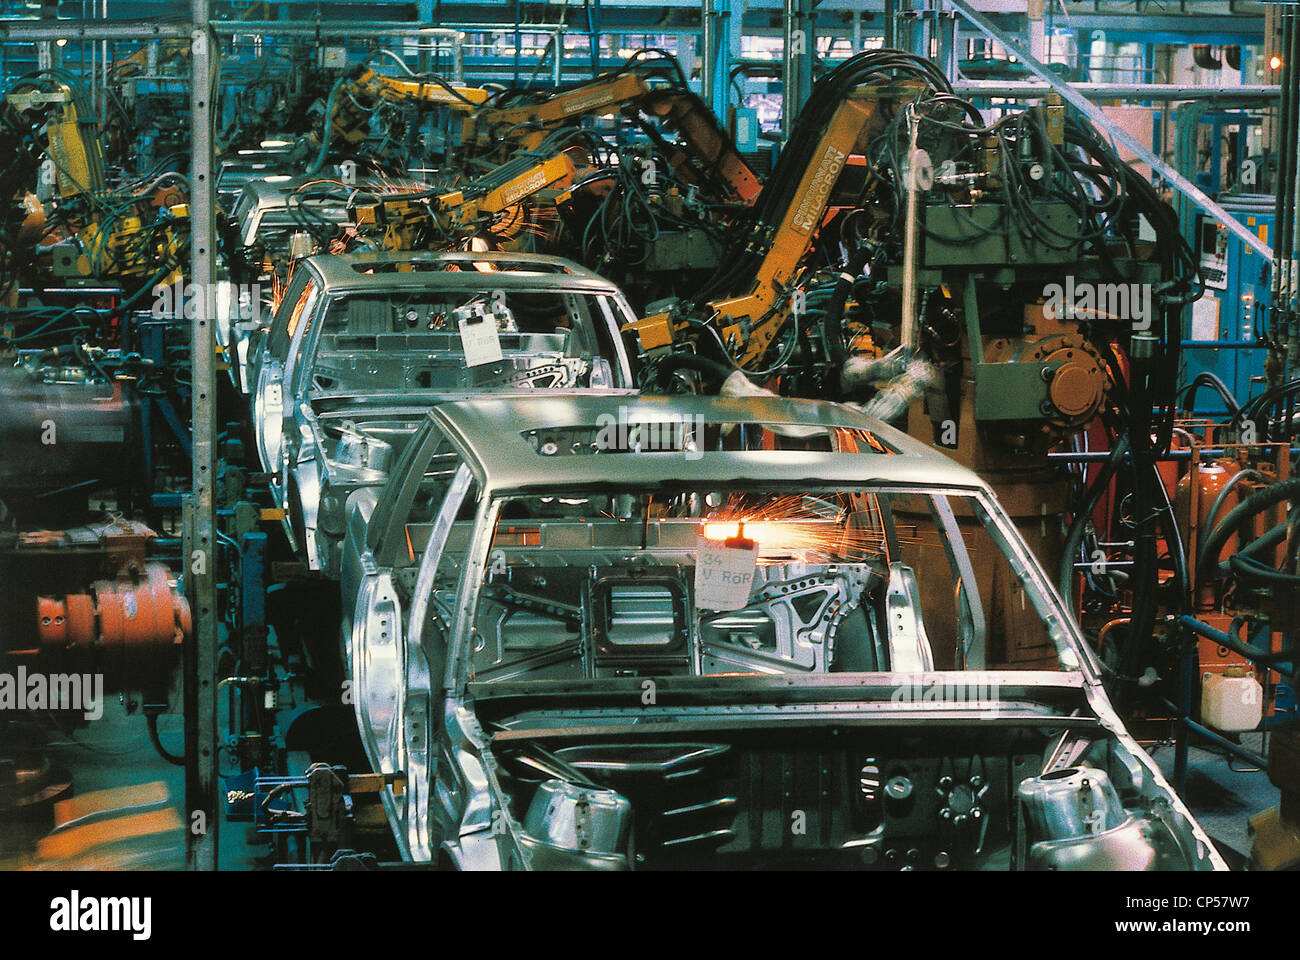 Volvo Gothenburg Sweden Auto Industry On A Line Of Welding Robots Stock Photo: 48059123 - Alamy